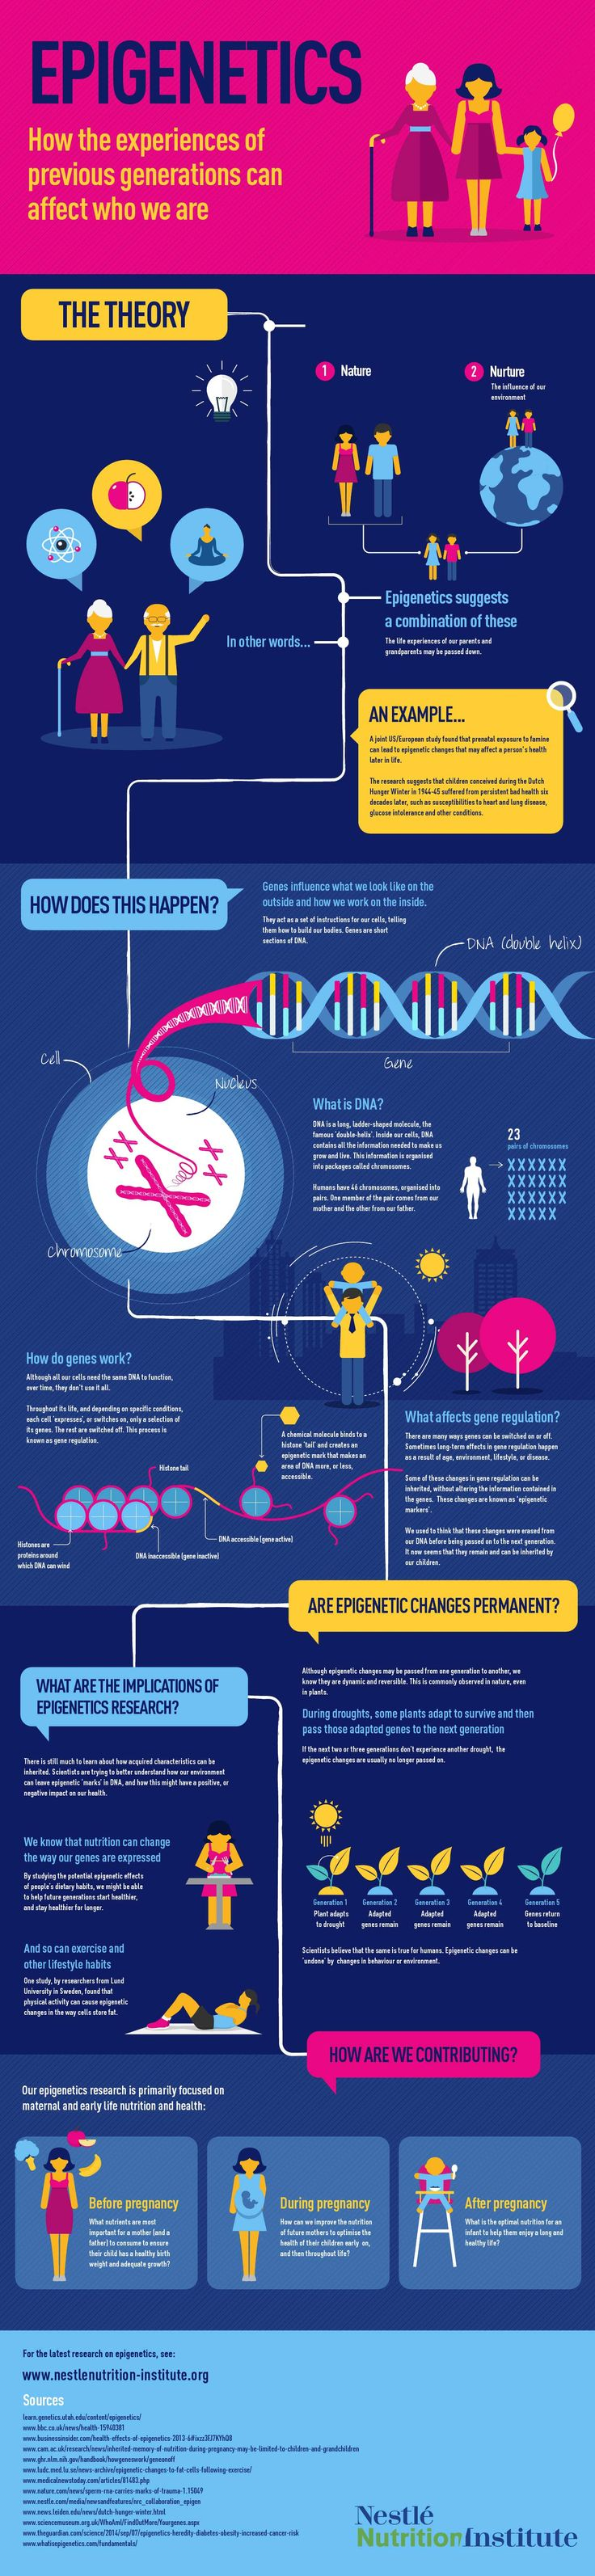 what is epigenetics essay If we imagine that most of us see our genetics as the smallest and most obscure aspect of our being, then epigenetics are an even more minute part of the genetics that make or break us i picture epigenetics as being the particles that make up an atom we envision atoms as the smallest possible.